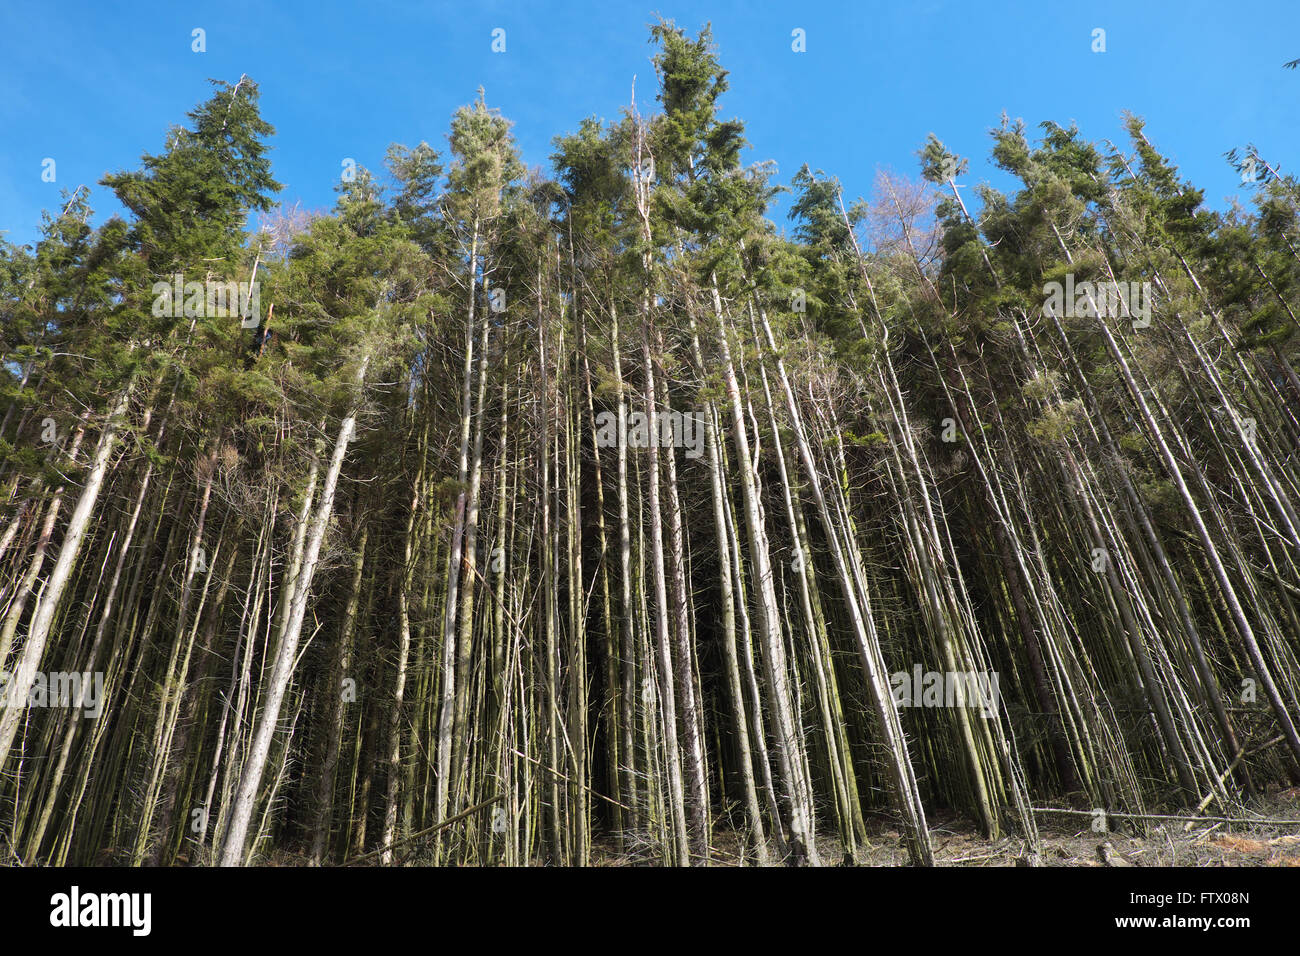 Pine trees in commercial forest in Wales UK - Stock Image